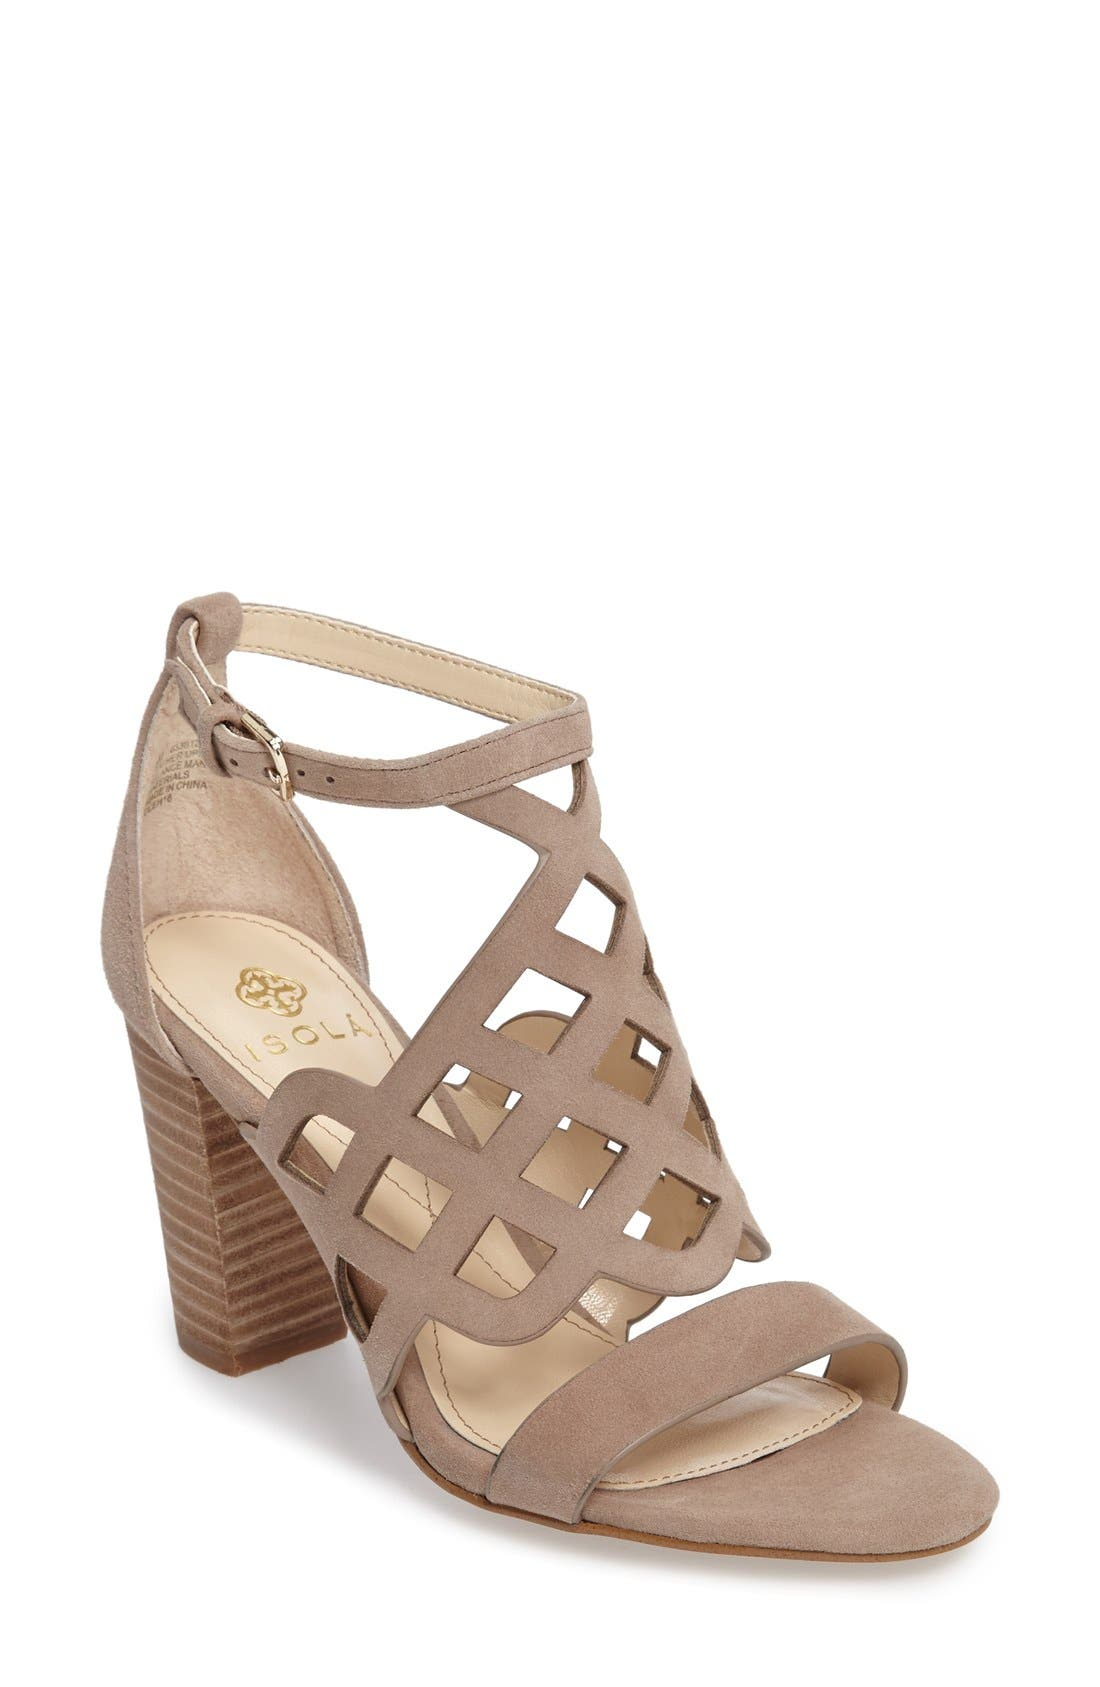 Alternate Image 1 Selected - Isolá Despina Cutout Ankle Strap Sandal (Women)